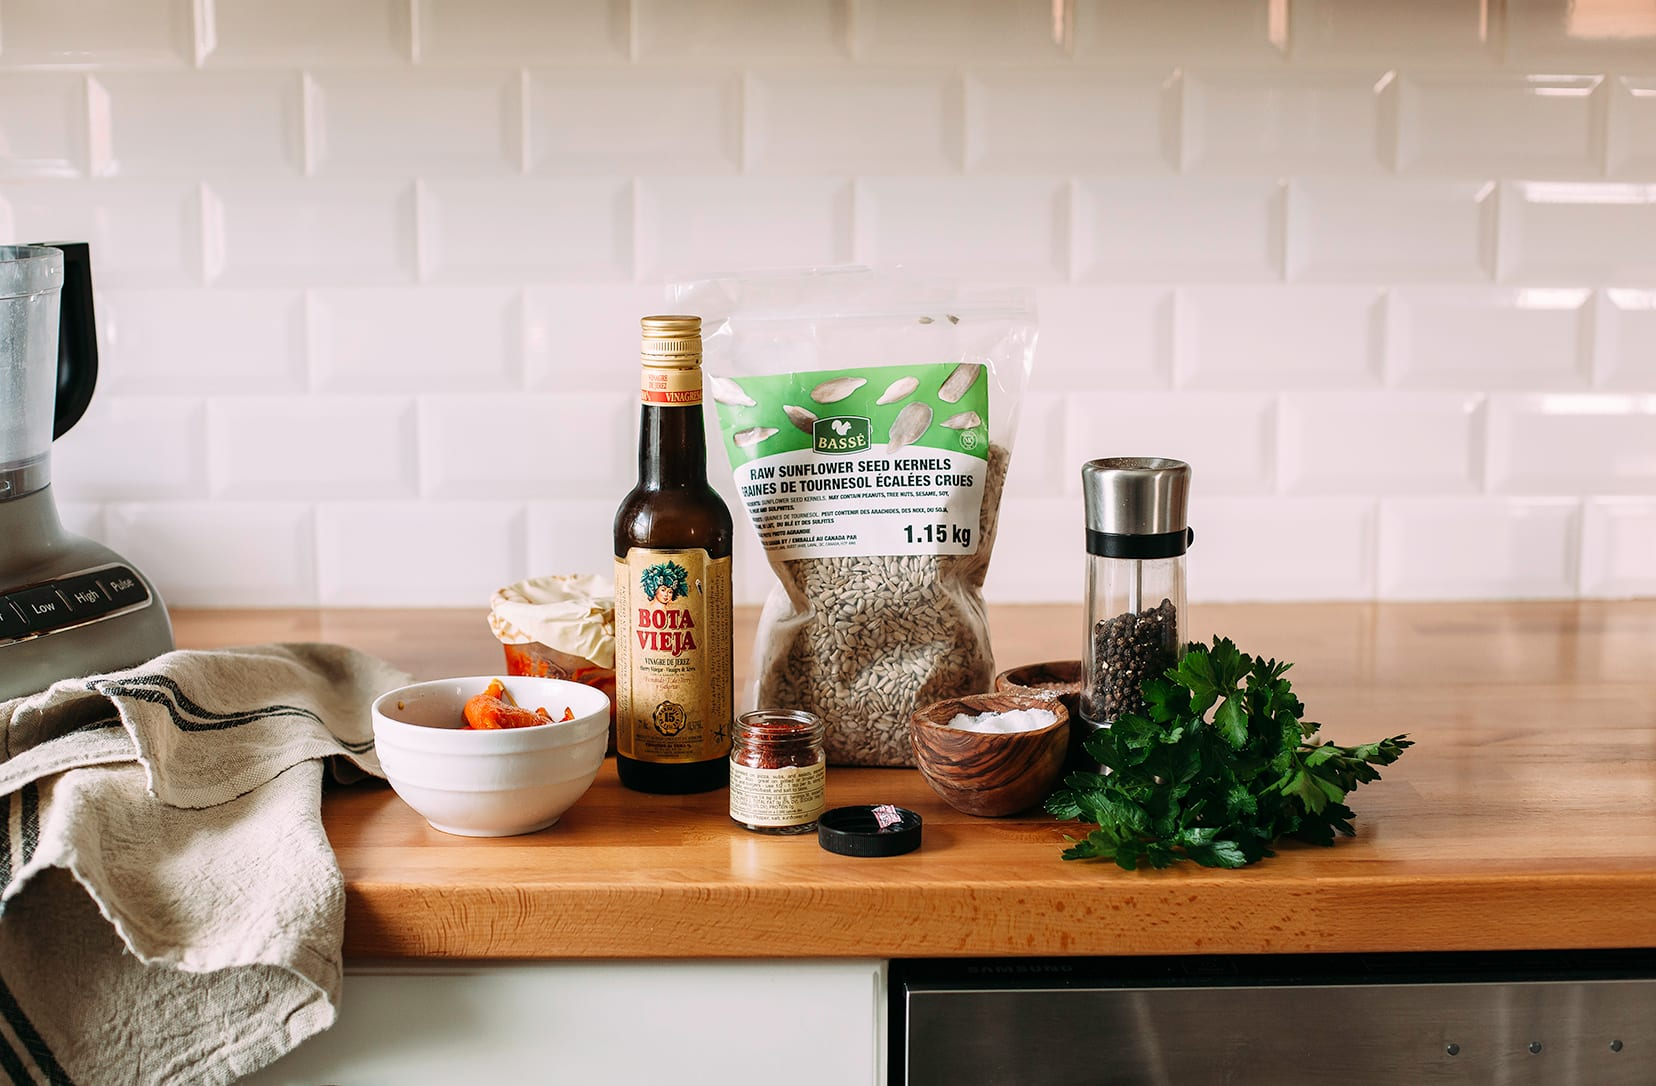 Image shows sunflower romesco sauce ingredients on a wood countertop.